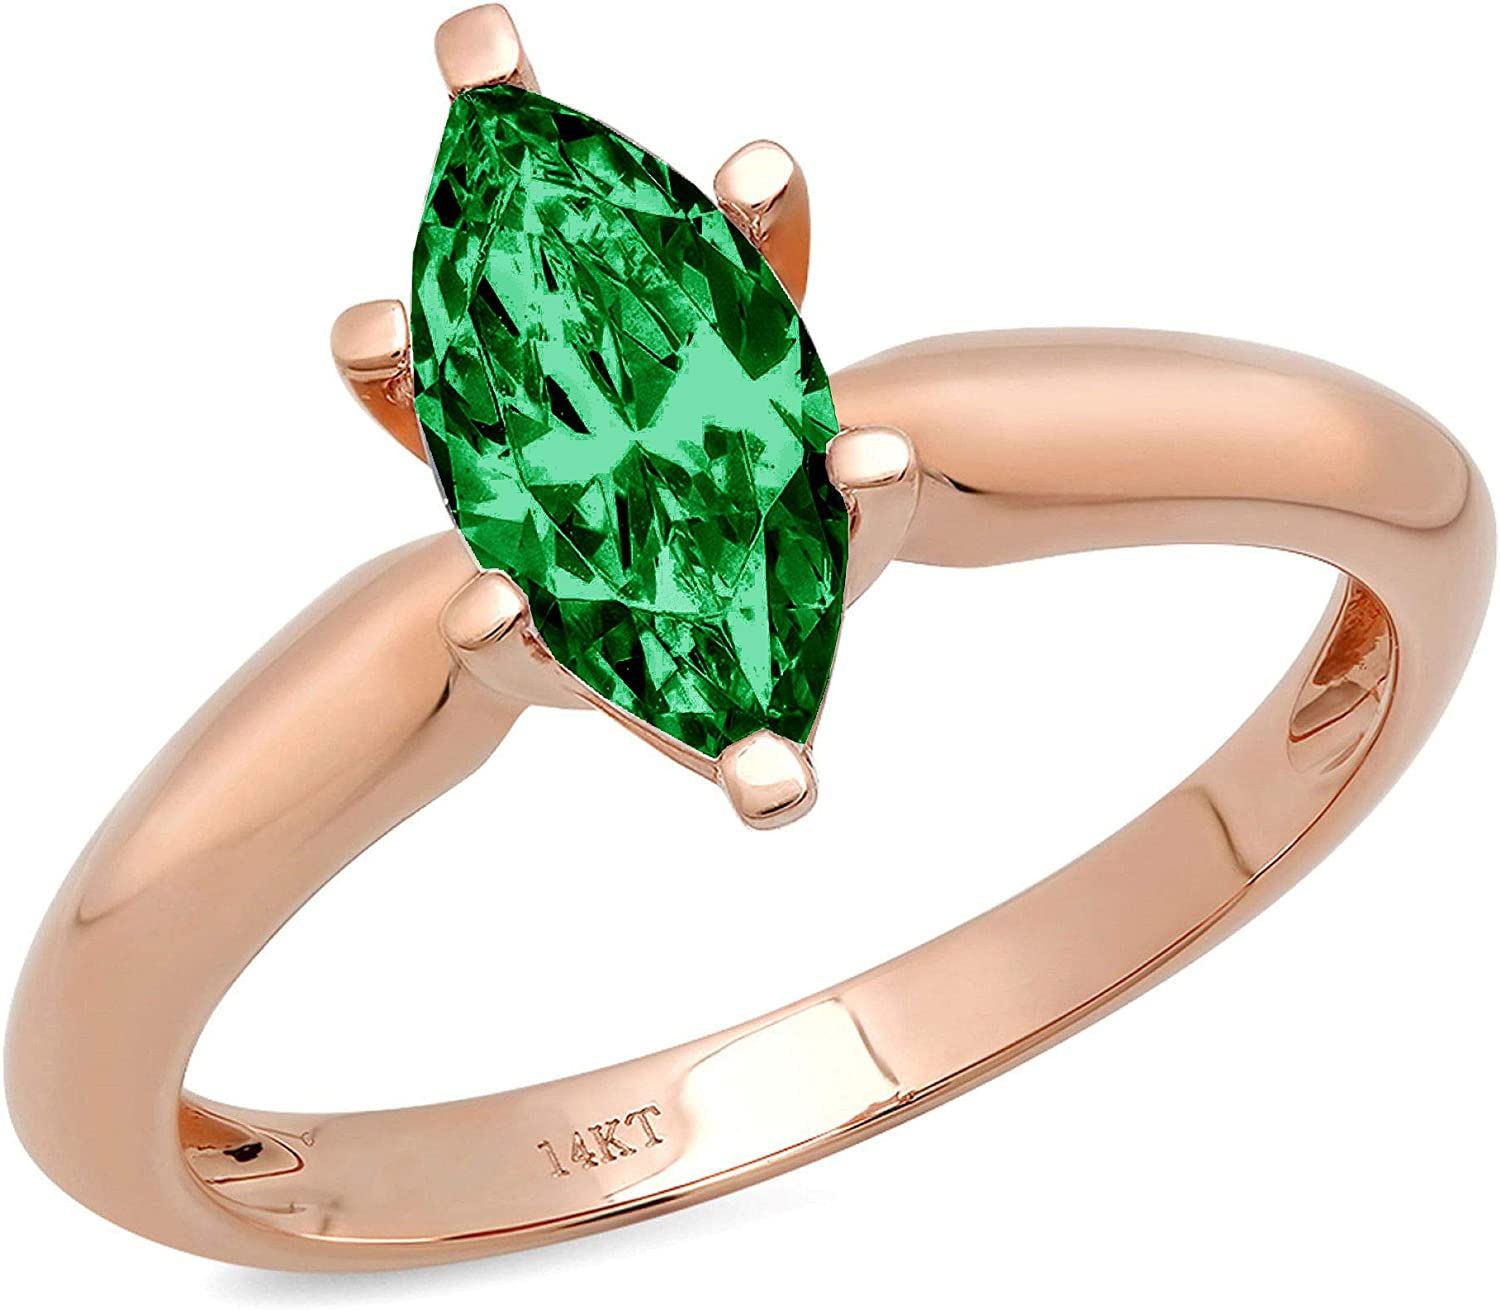 1.4ct Brilliant Marquise Cut Solitaire Flawless Simulated Cubic Zirconia Green Emerald Ideal VVS1 6-Prong Engagement Wedding Bridal Promise Anniversary Designer Ring Solid 14k Rose Gold for Women